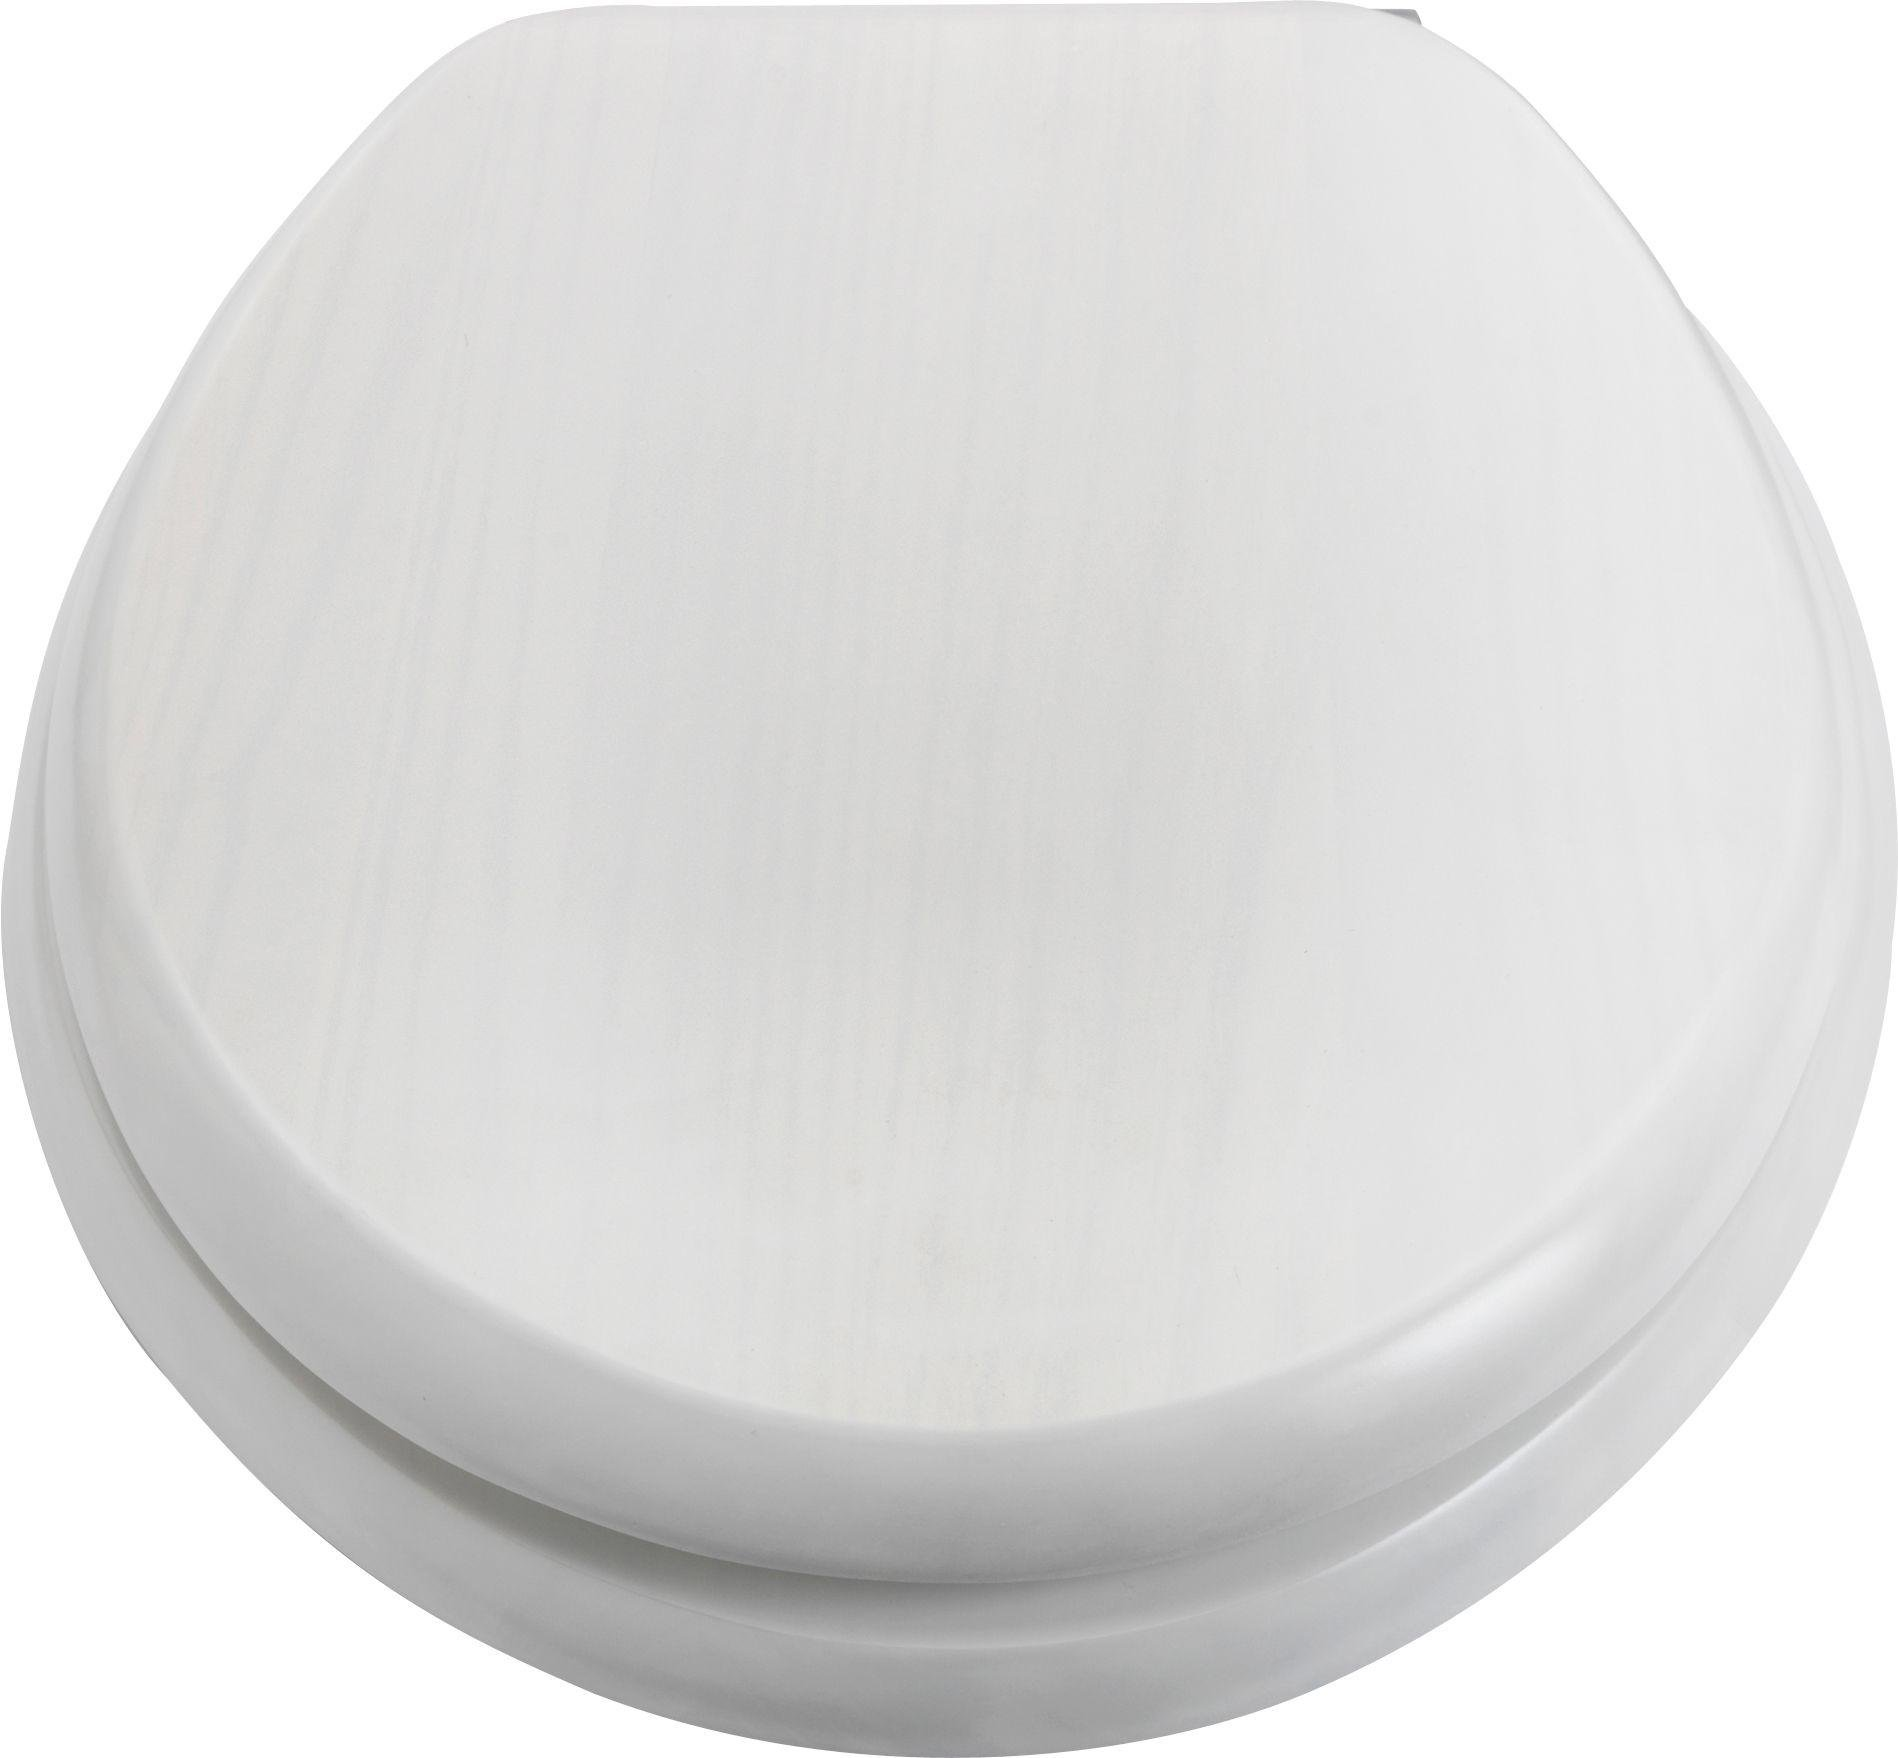 Argos Home Solid Wood Slow Close Toilet Seat - White Washed